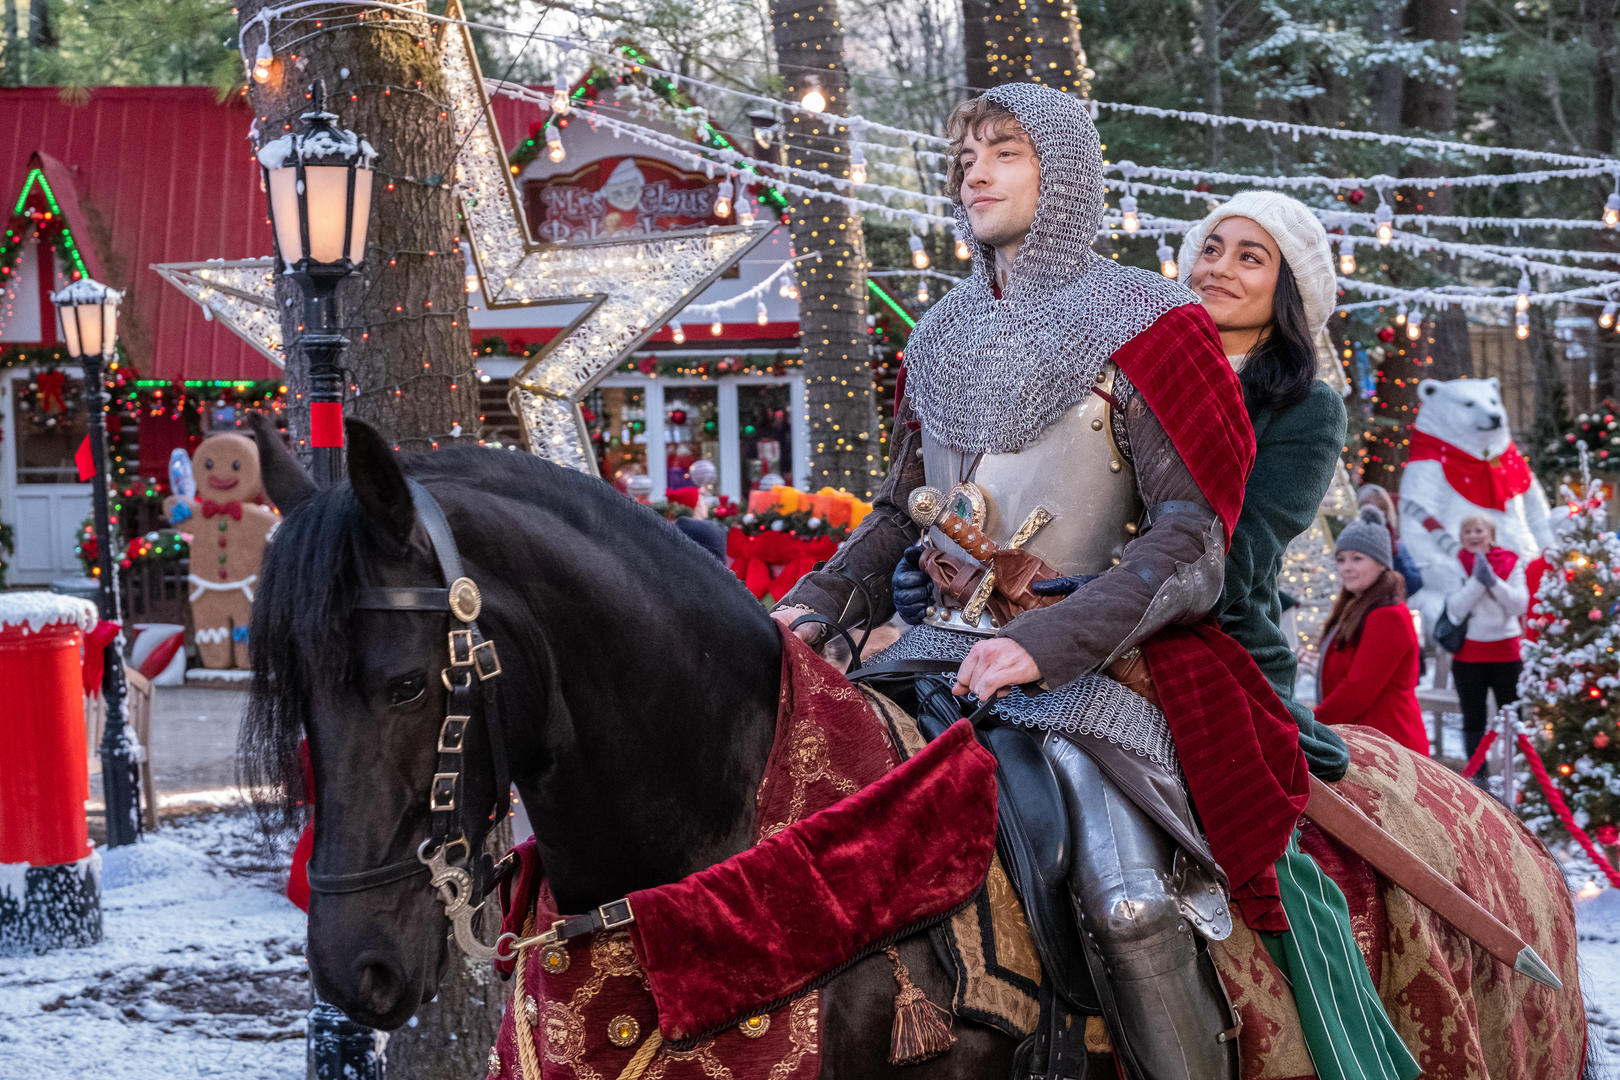 josh whitehouse and vanessa hudgens wearing coats and riding on a horse in front of christmas lights